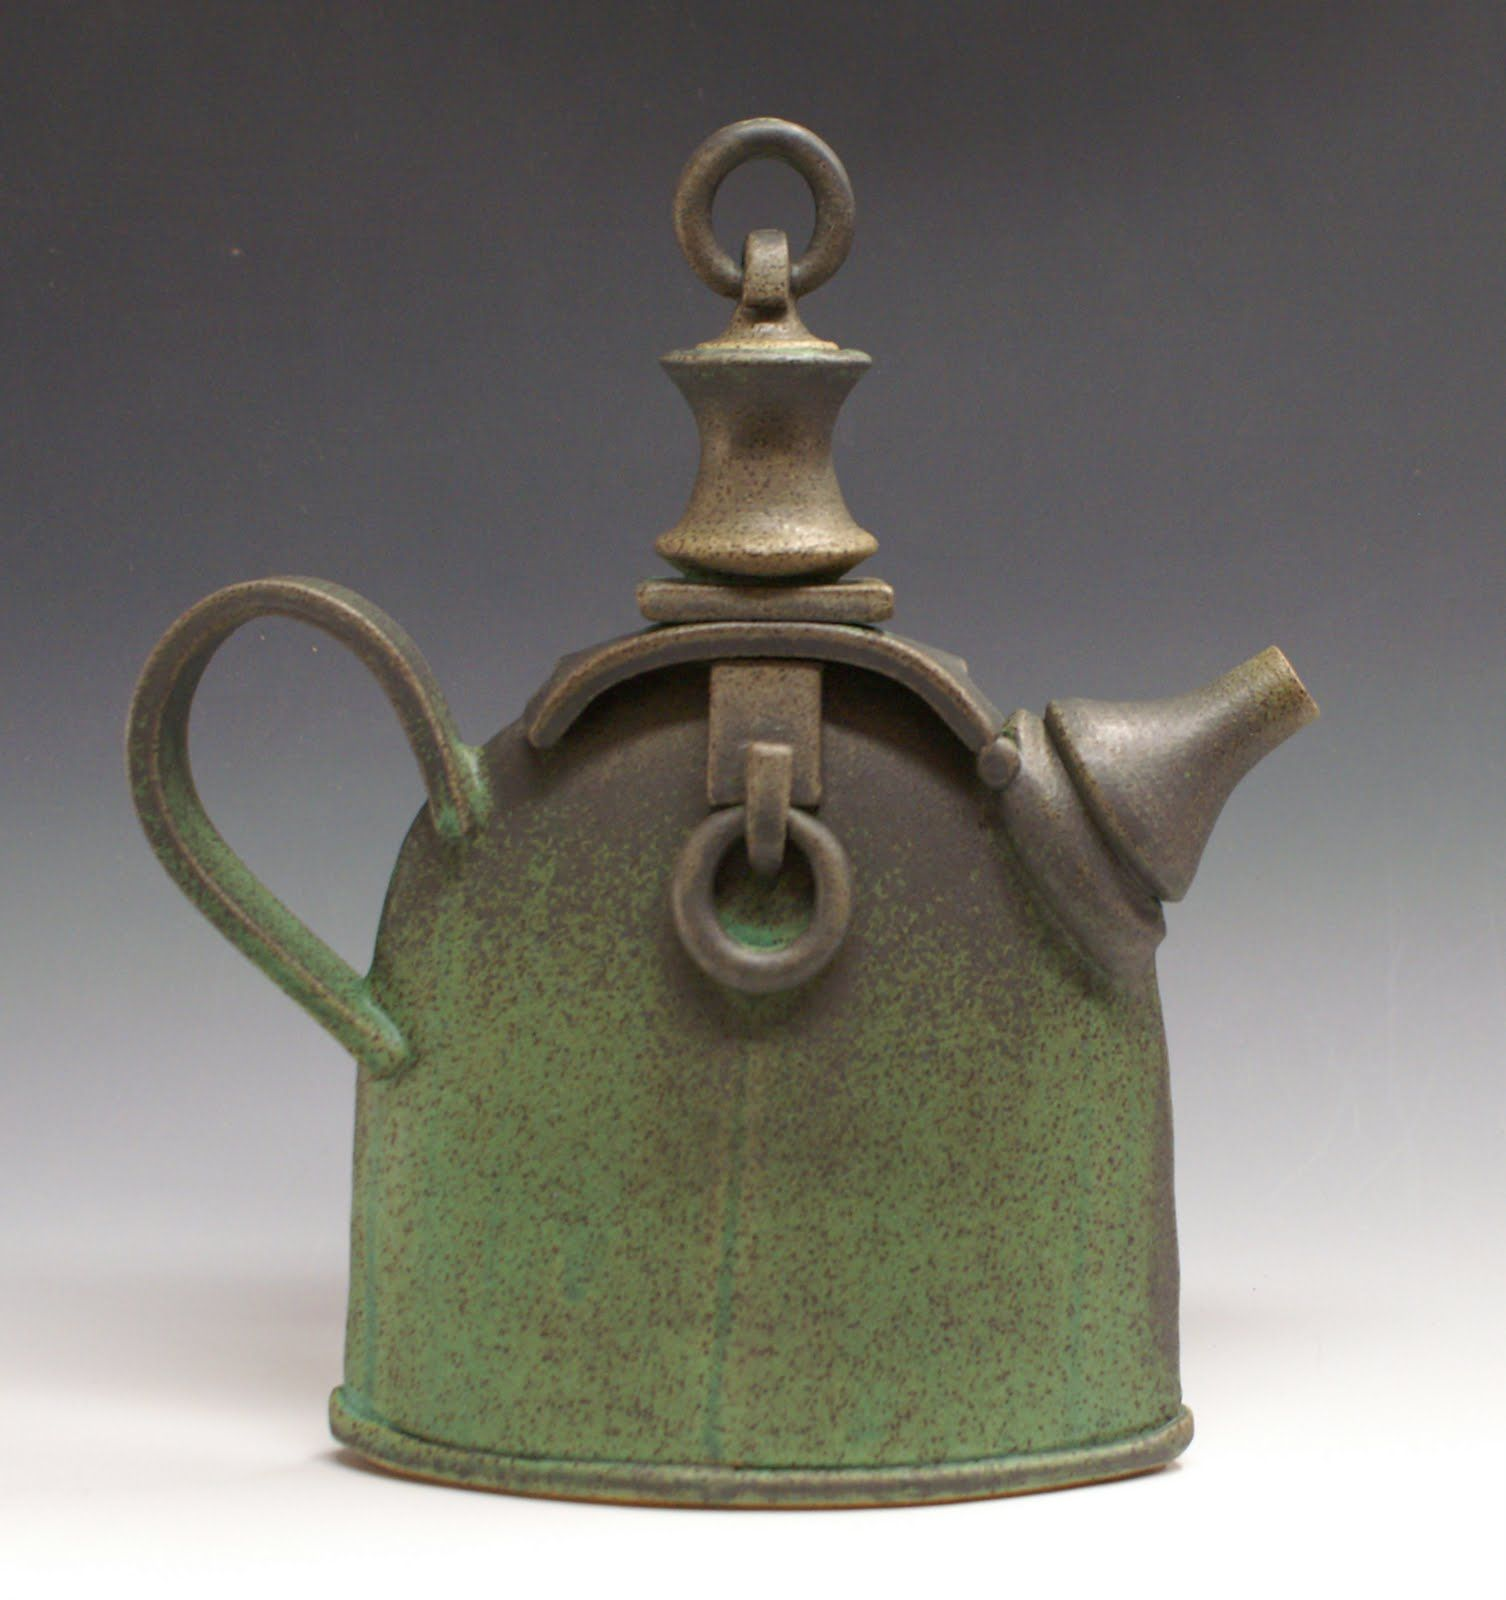 sandy terry ceramic artist and painter  green bronze teapot  - pottery teapots ceramic teapots contemporary teapots ceramic artiststerry o'quinn tea pots tea time painters kettles